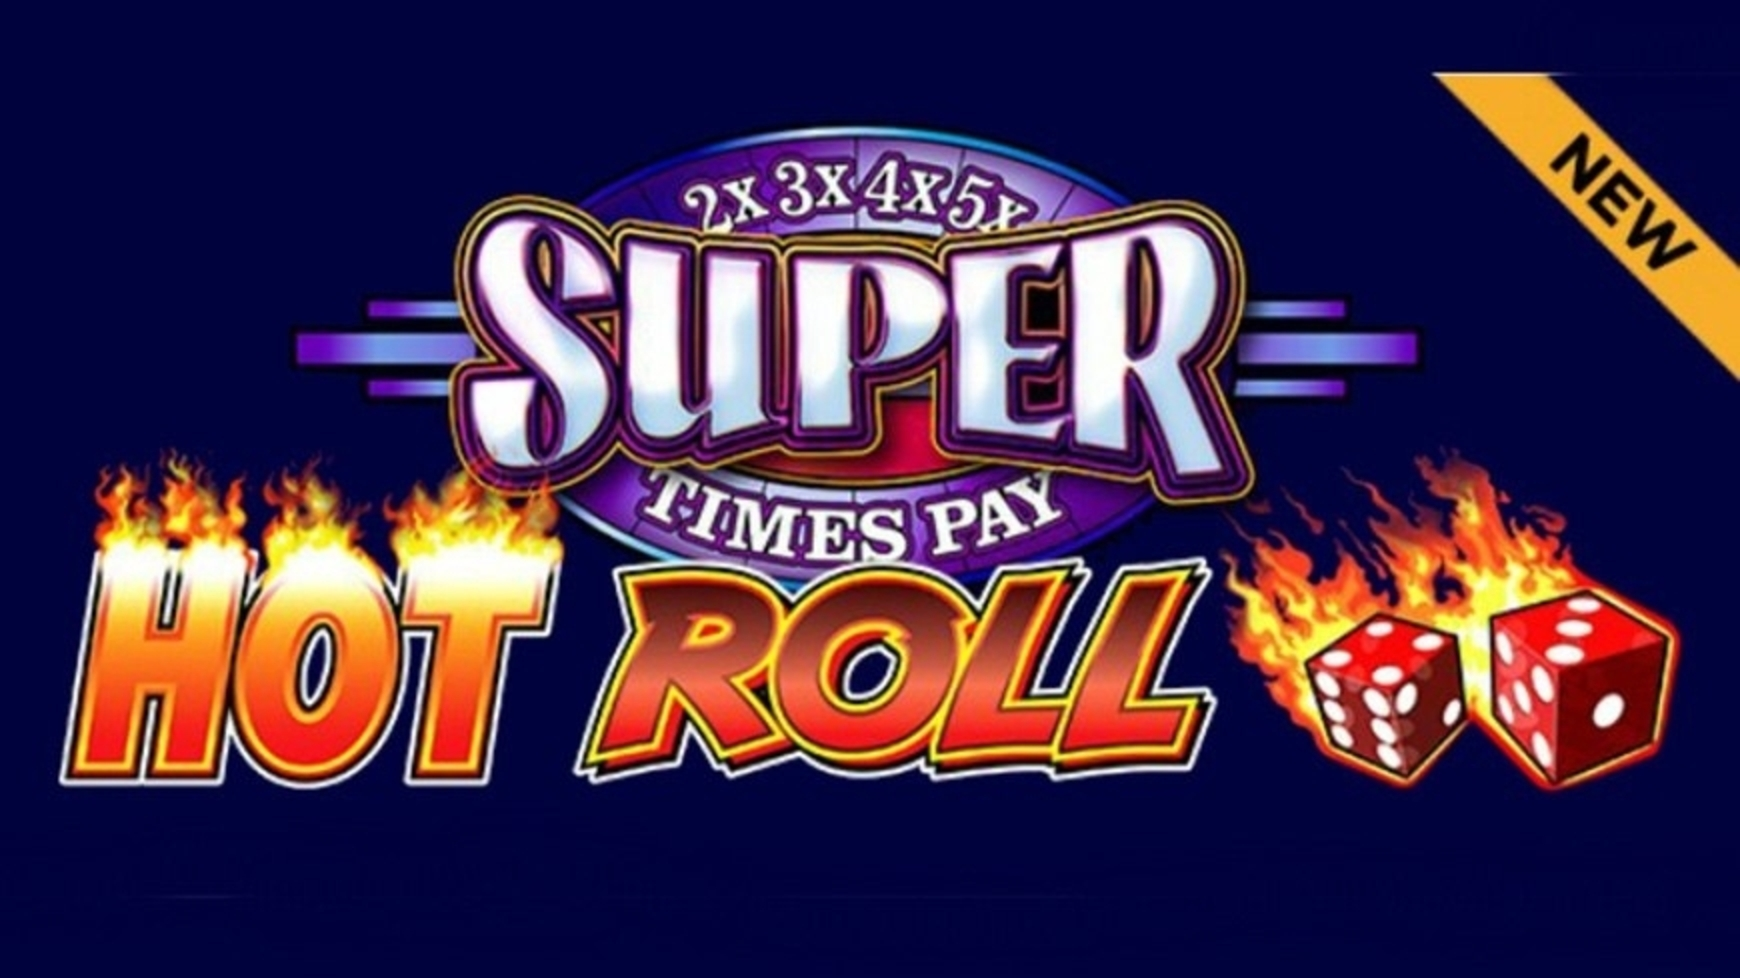 The Super Times Pay Online Slot Demo Game by IGT